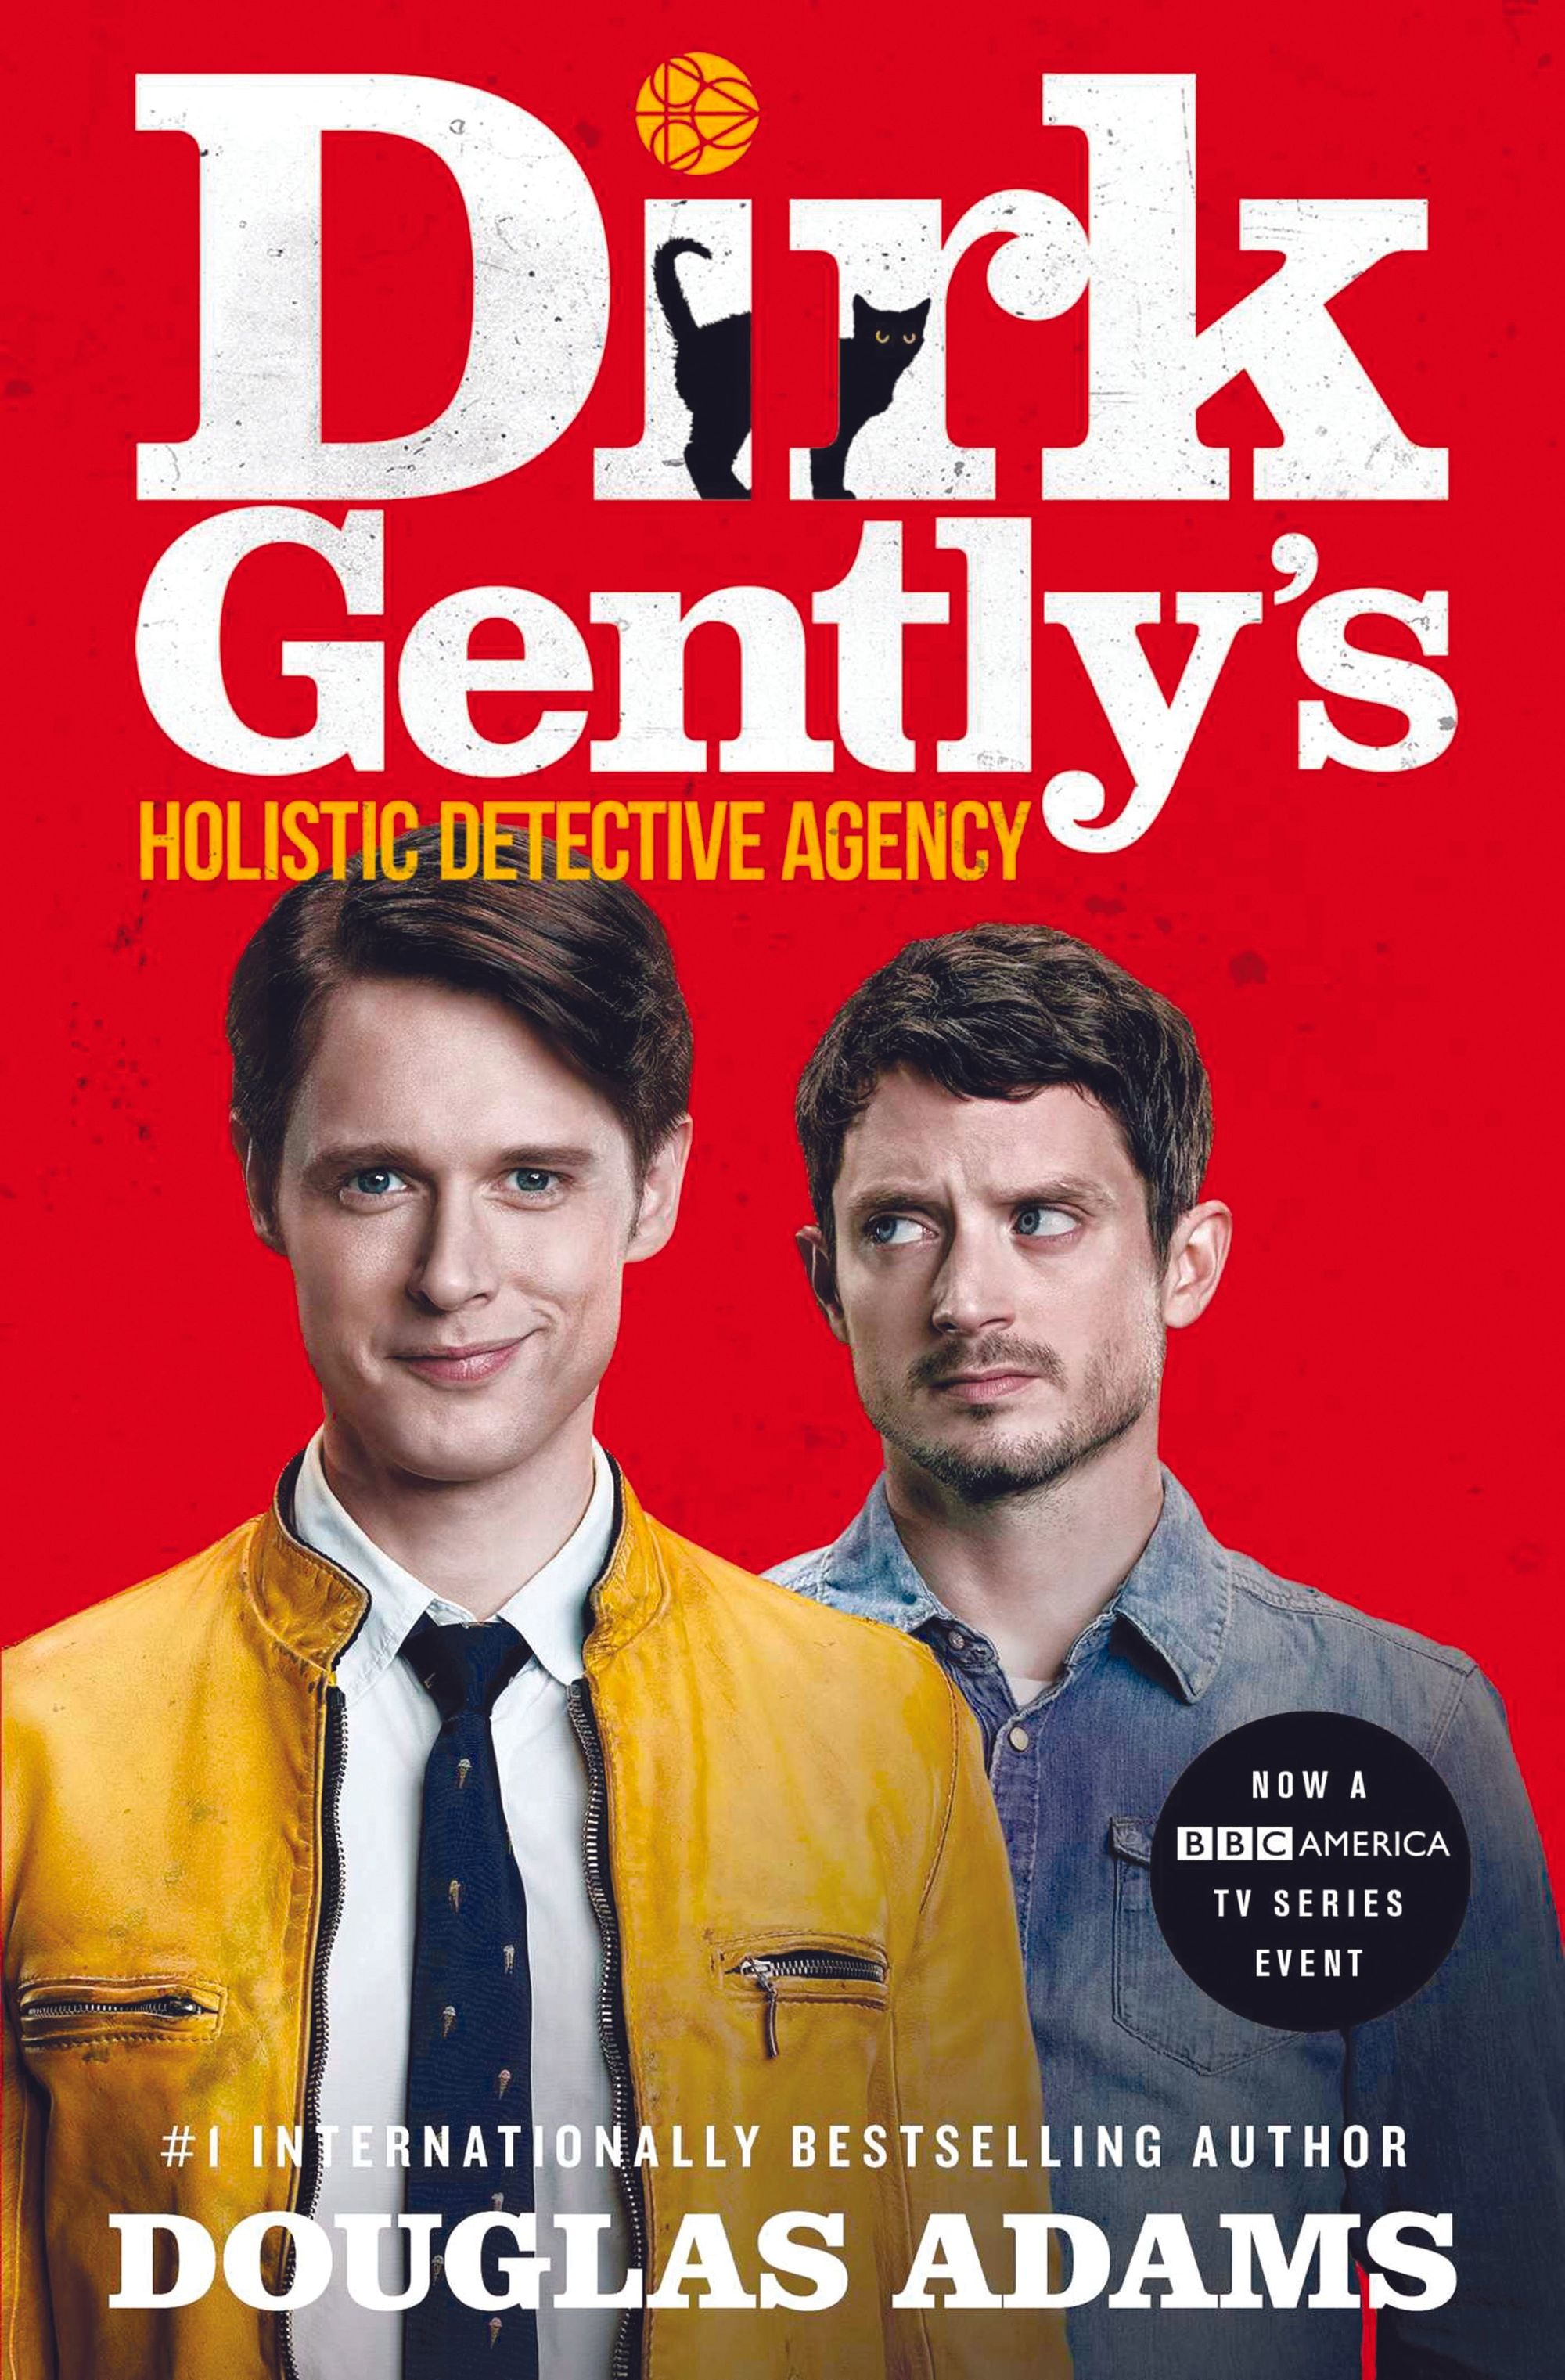 Dirk Gently's Holistic Detective Agency, by Max Landis.